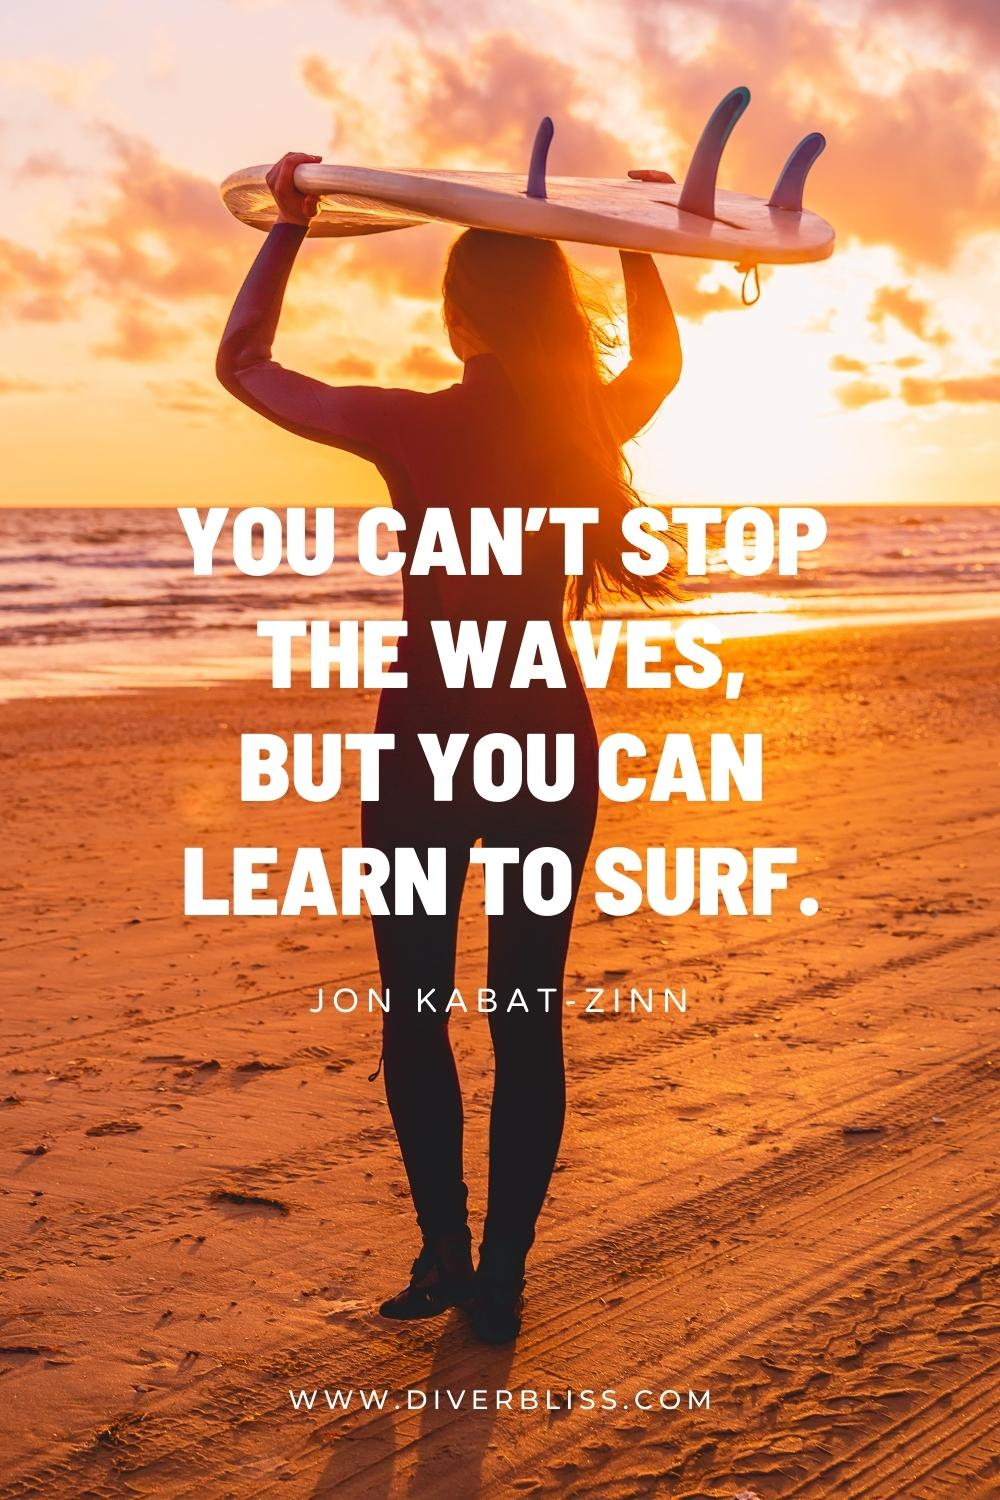 """""""You can't stop the waves, but you can learn to surf."""" —Jon Kabat-Zinn"""